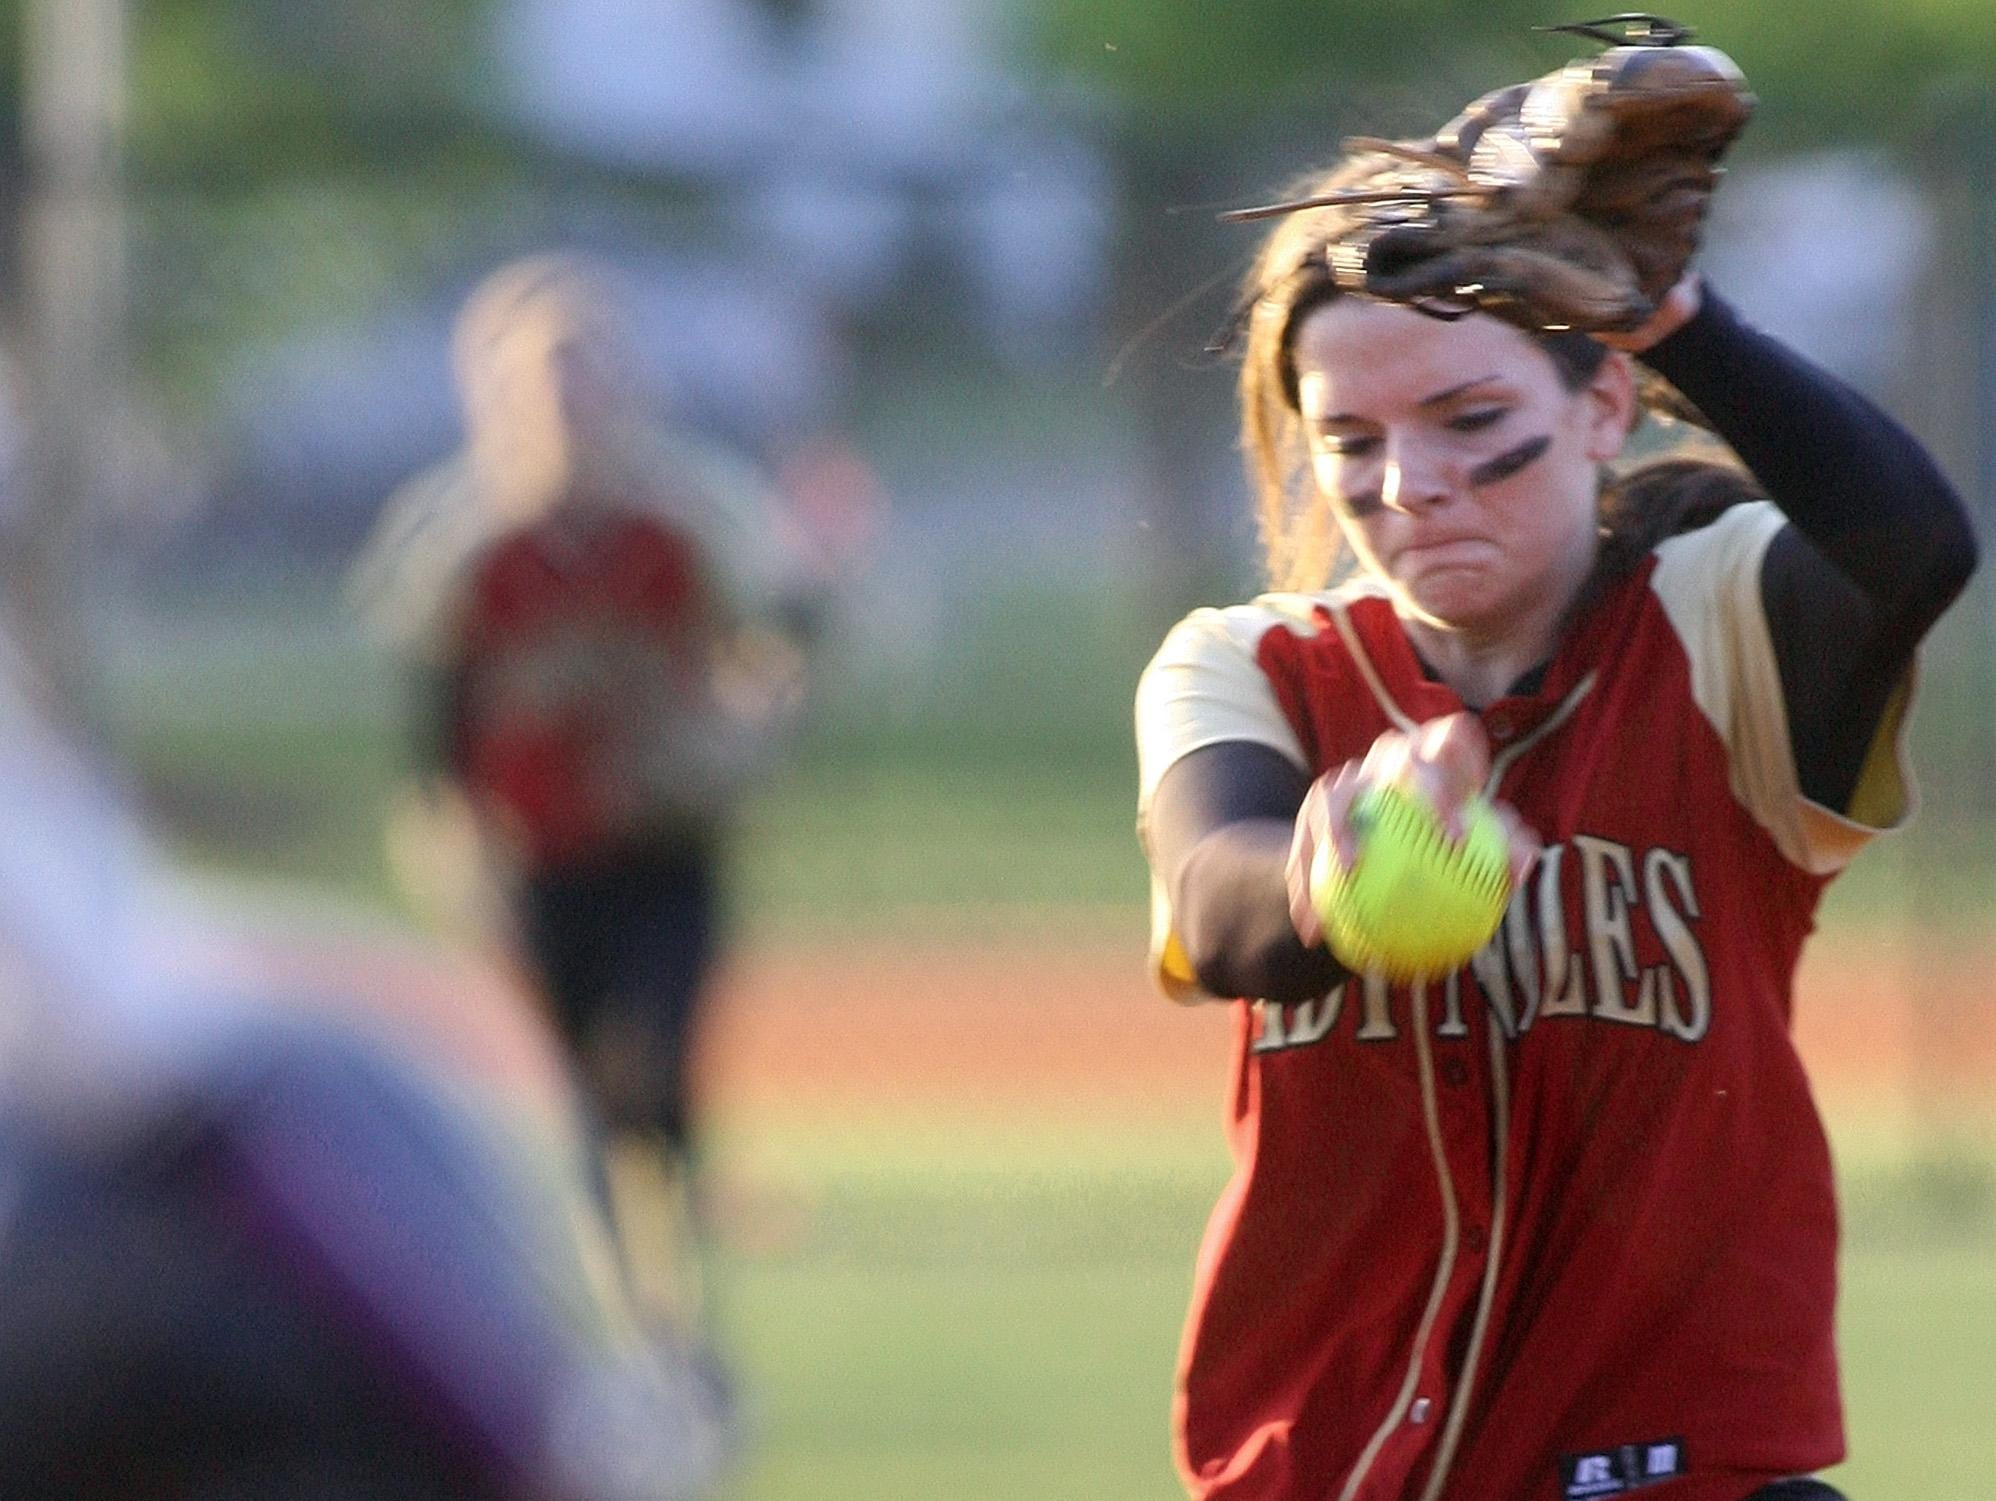 Florida High pitcher Taylor Rossman winds up before striking out a Marianna batter in the third inning of their Class 3A regional quarterfinal softball game on April 27, 2010. Rossman had 14 strikeouts in the game and the Seminoles won 1-0.